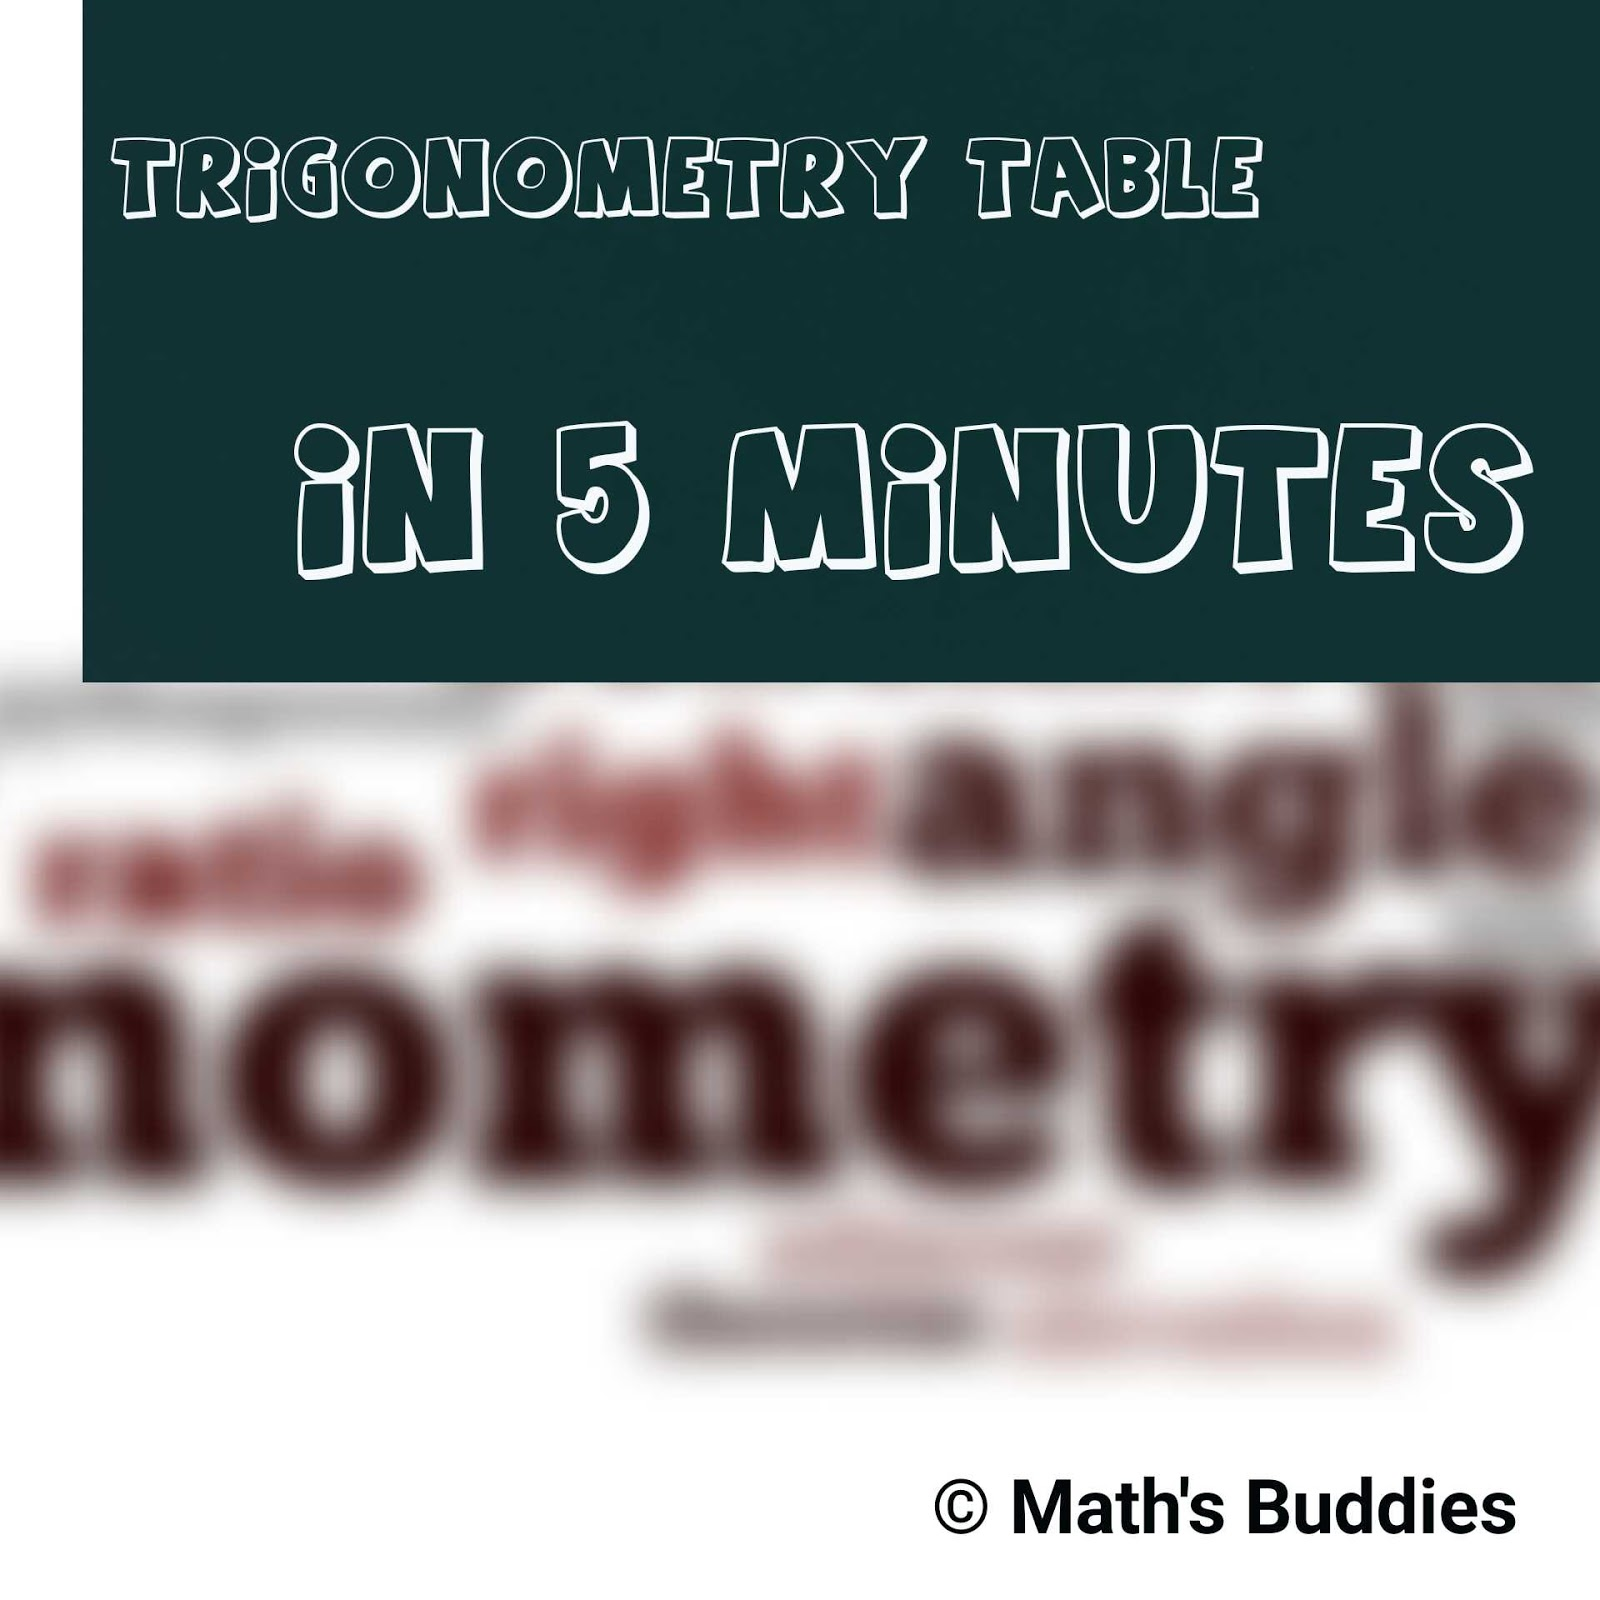 How to construct Trigonometry table in 5 minutes without memorising ...